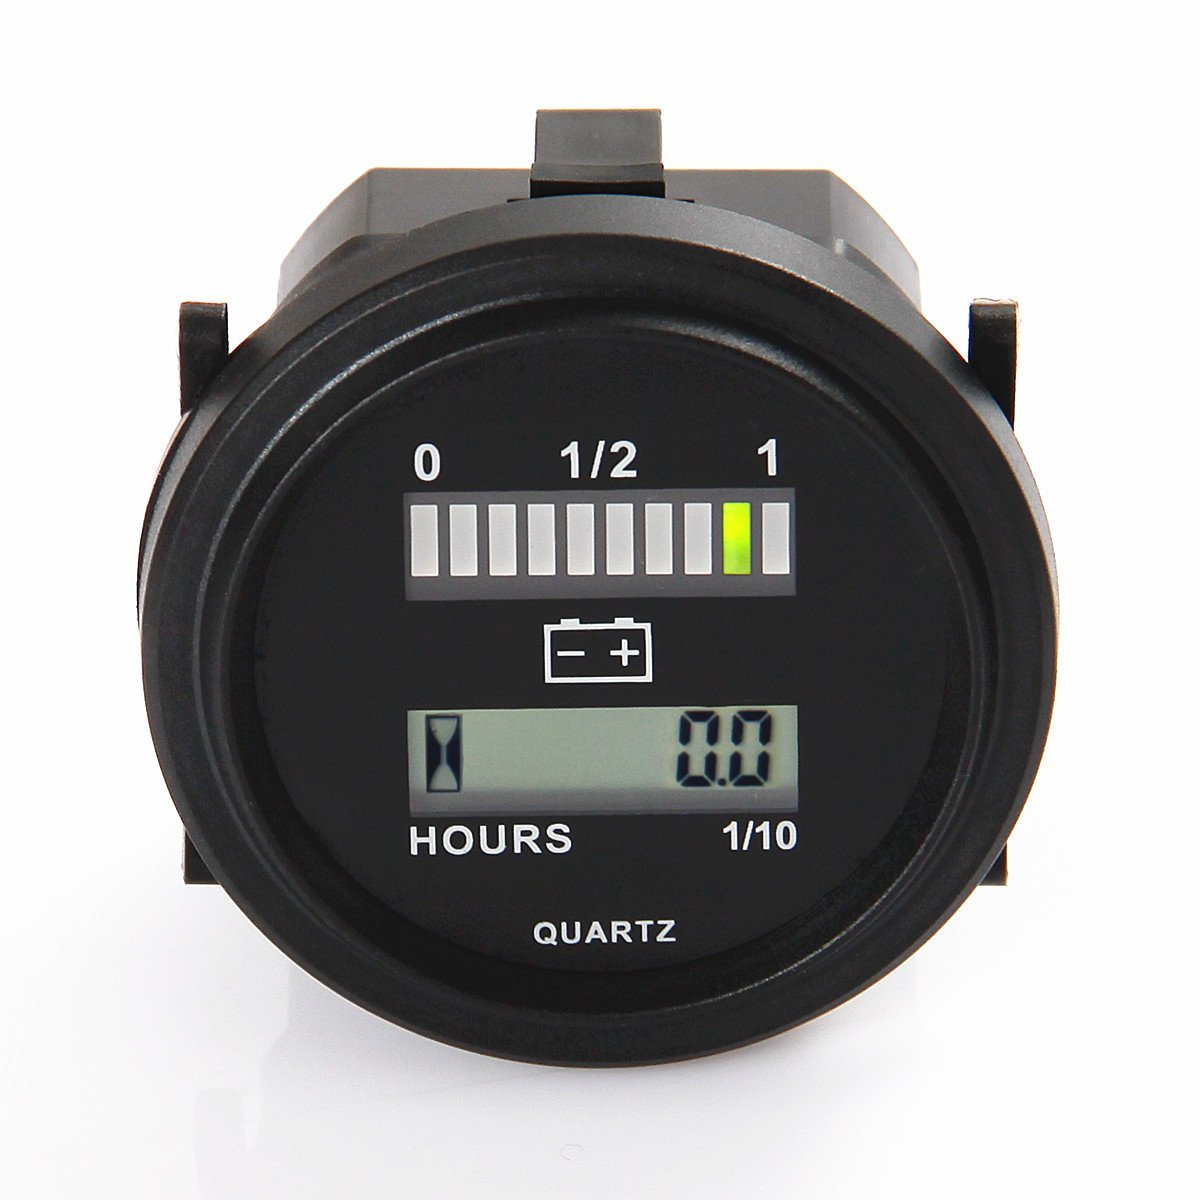 Searon LED 12V 24V 36V 48V 72V Digital Battery Indicator Status Charge Indicator with Hour Meter Gauge